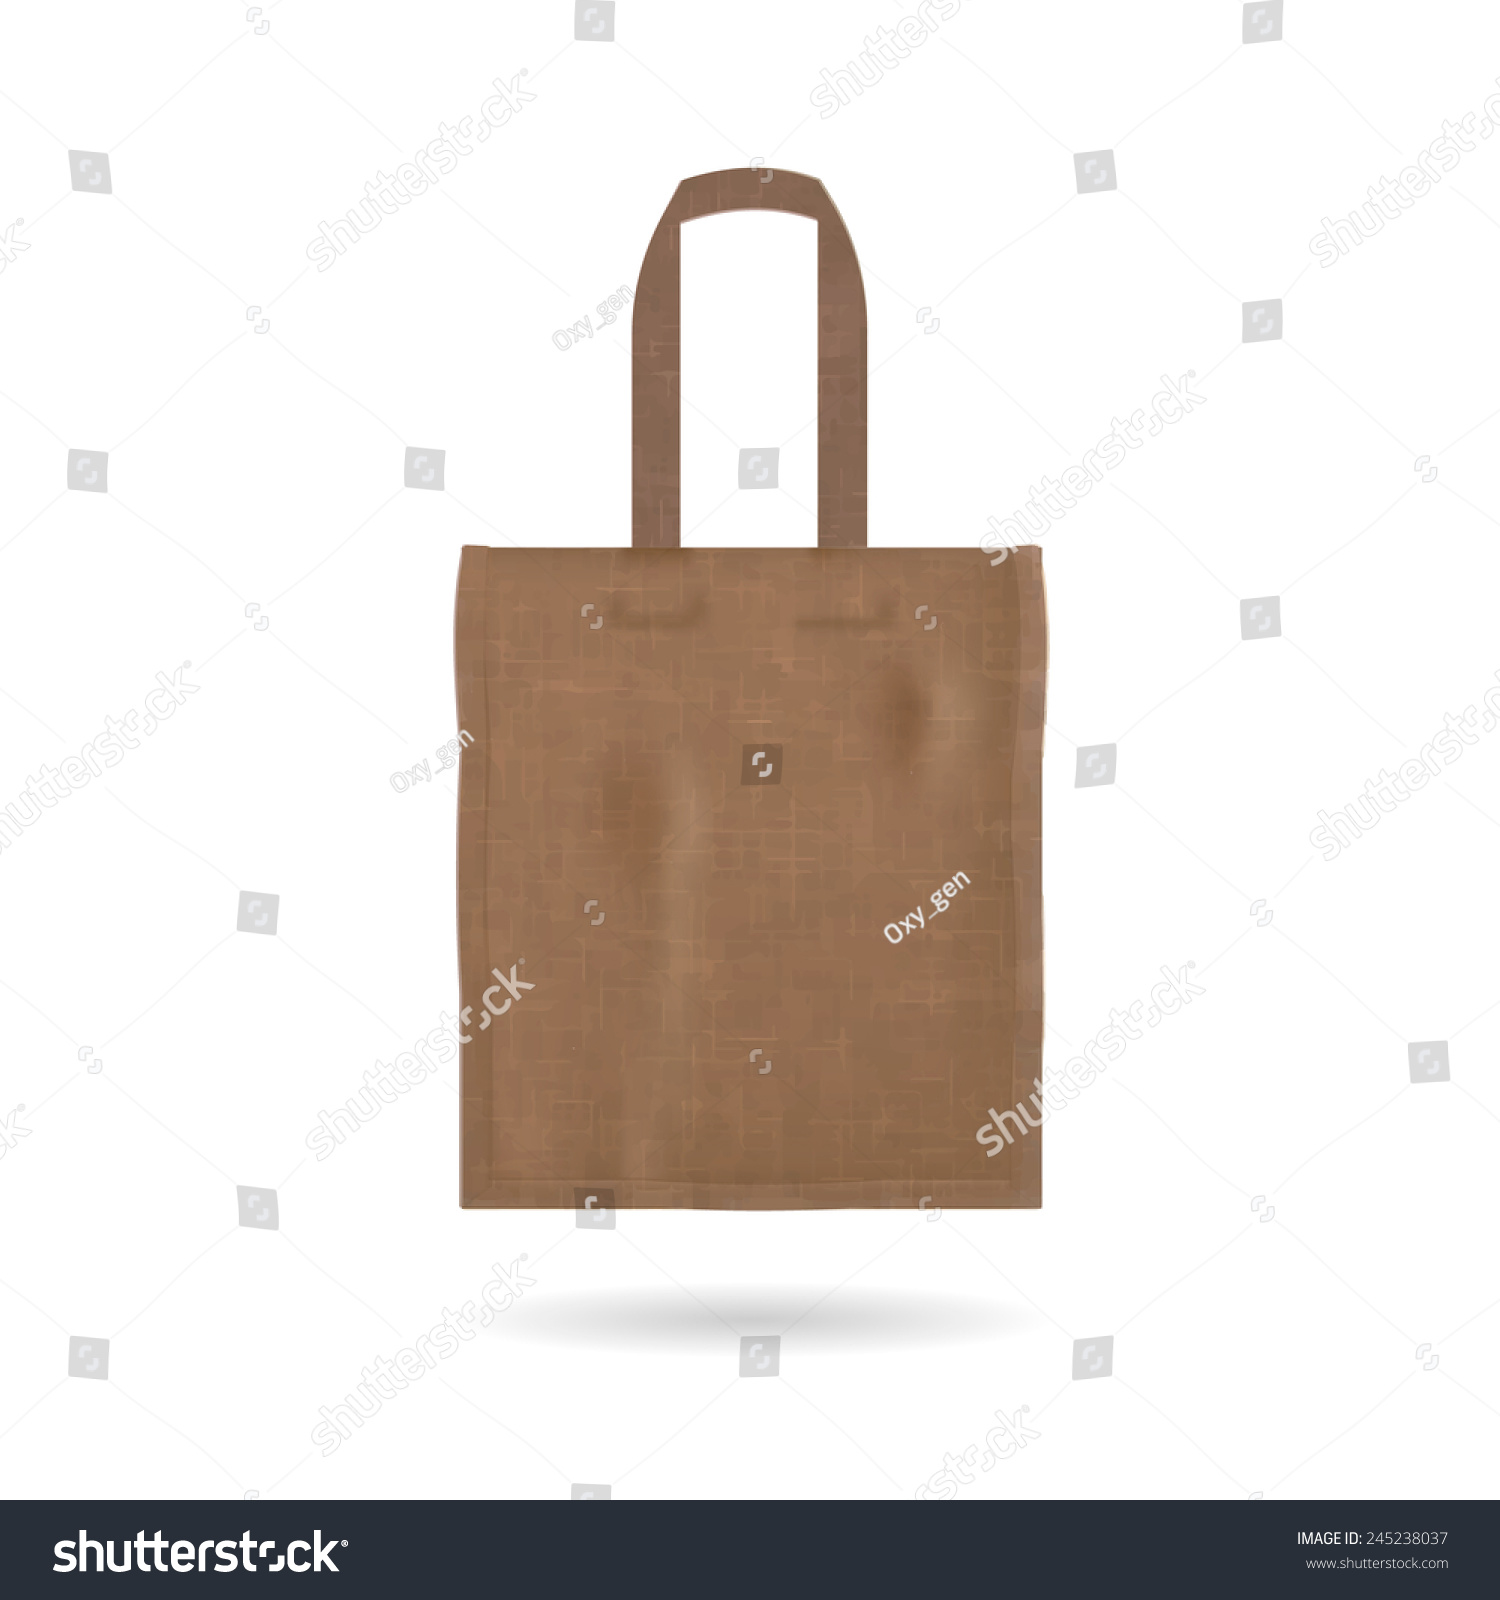 blank tote bag template isolated on stock vector 245238037 shutterstock. Black Bedroom Furniture Sets. Home Design Ideas